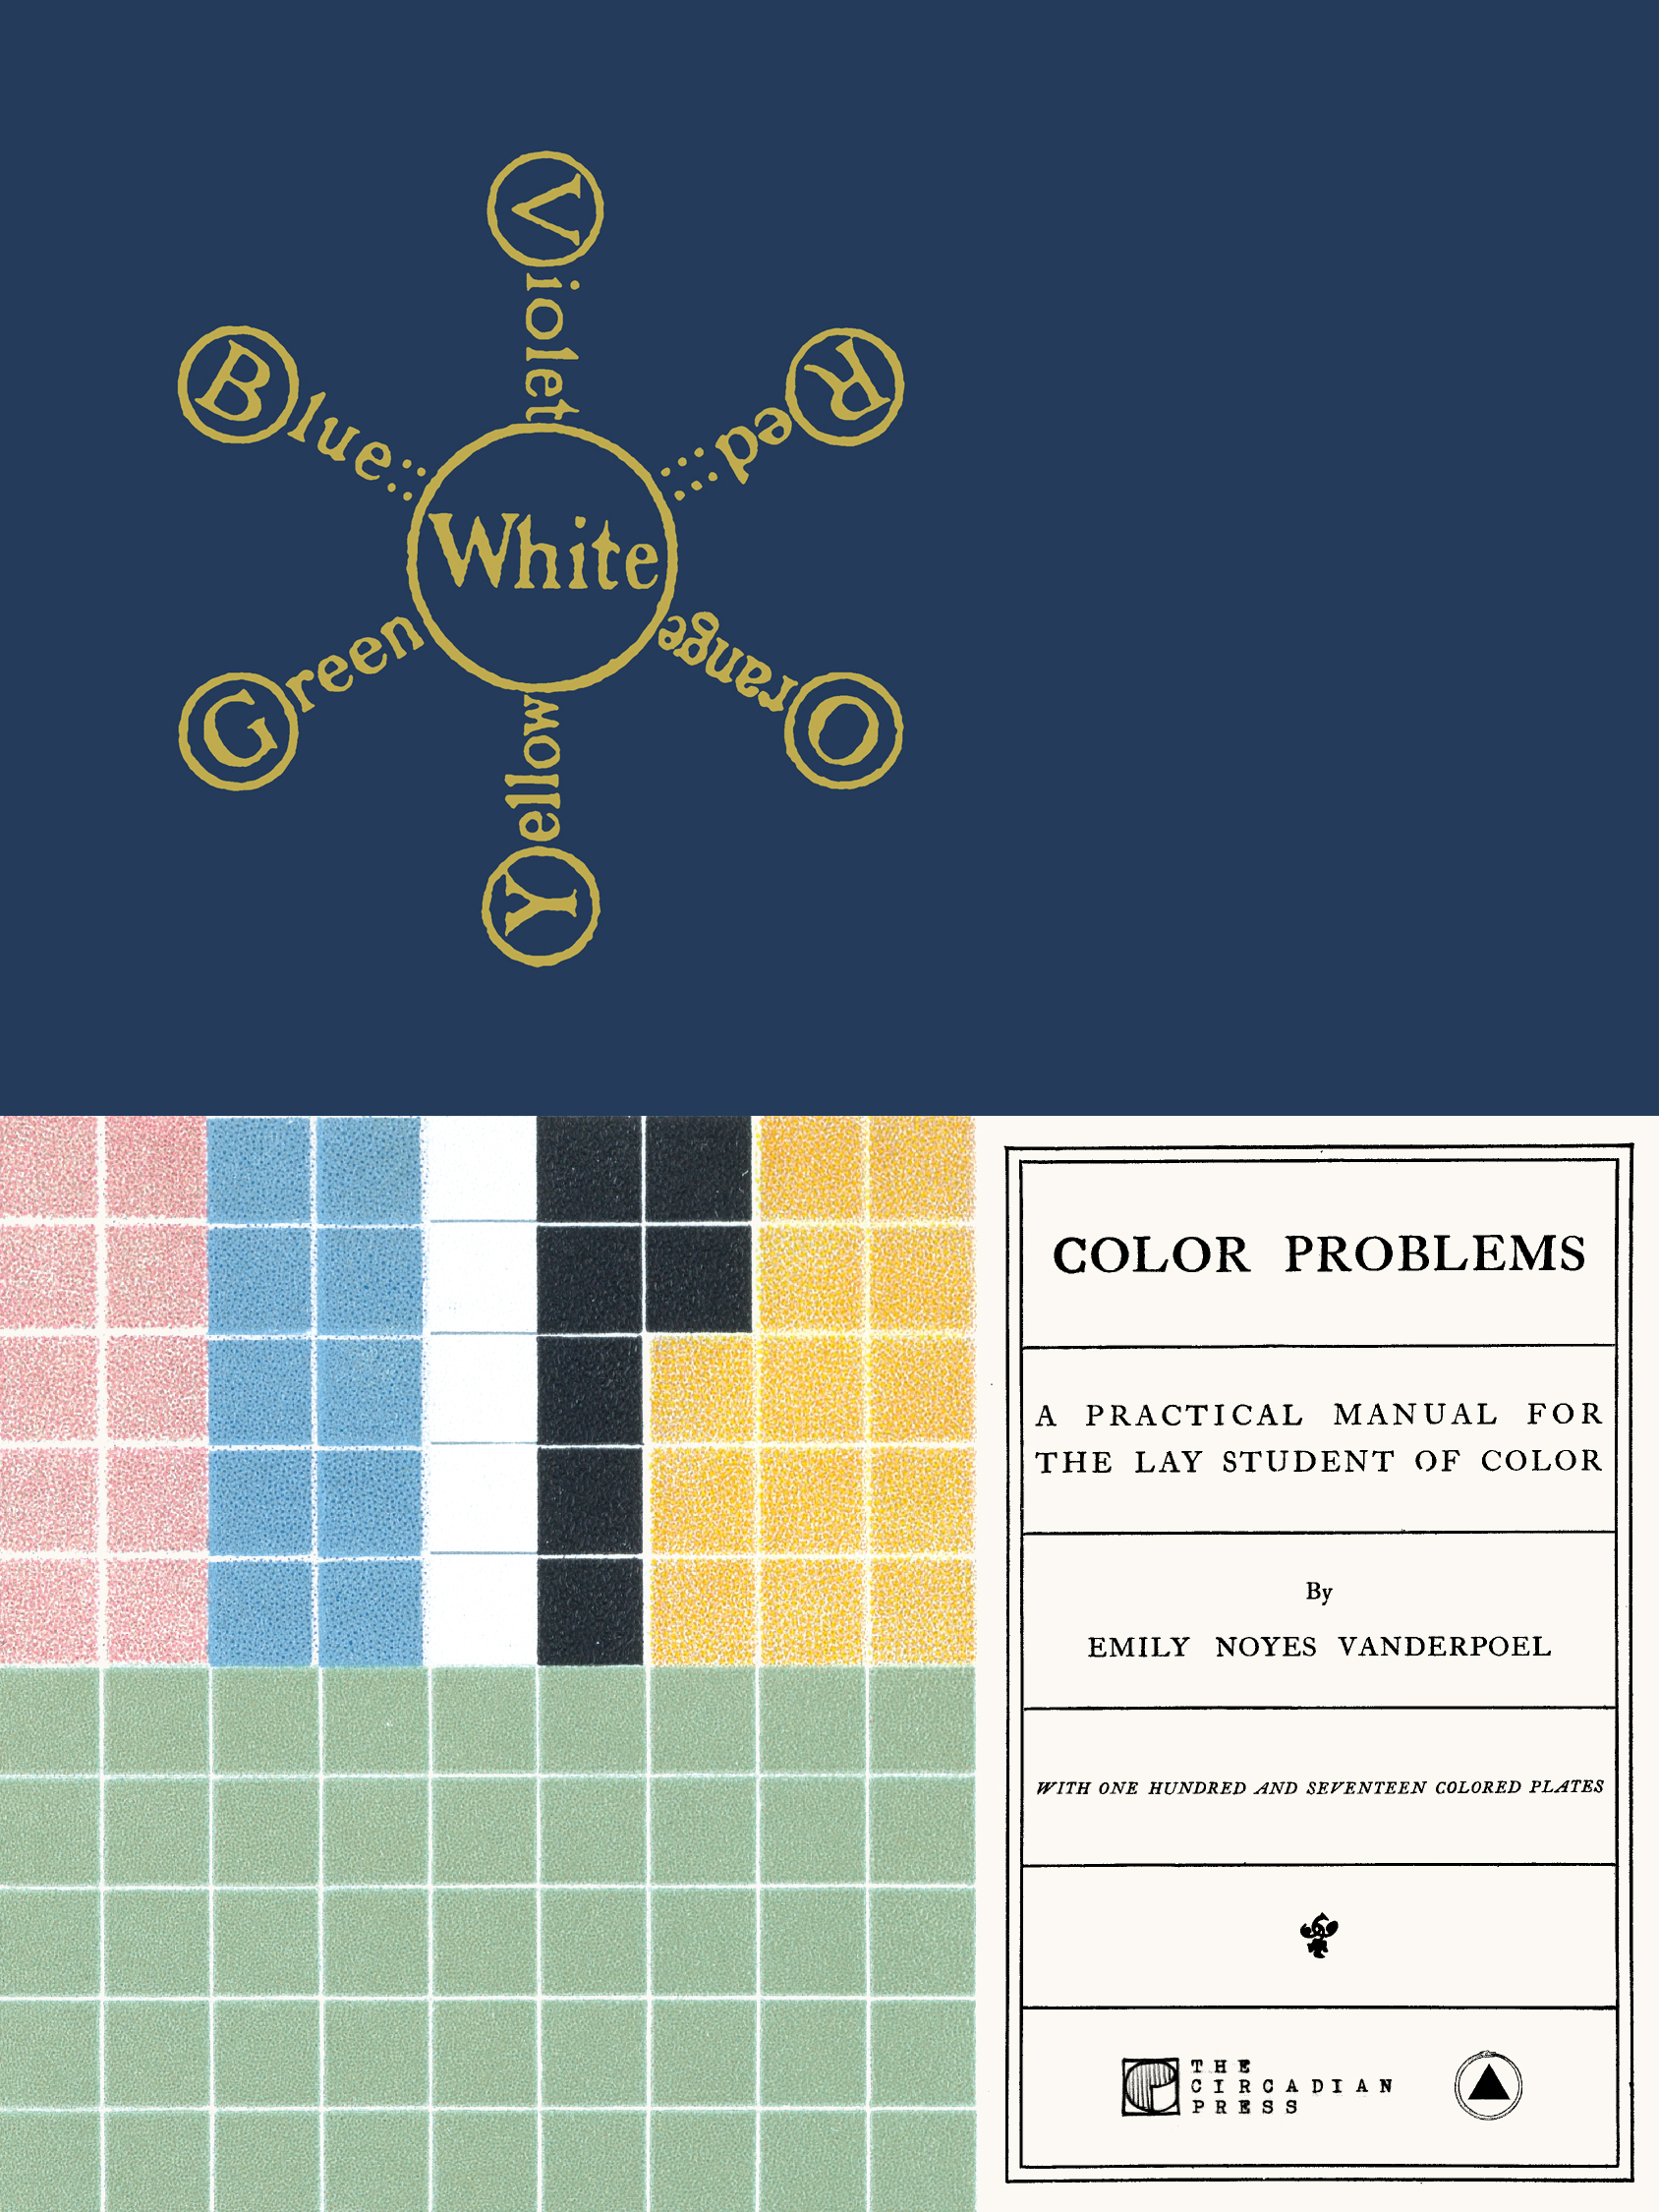 Color Problems A Practical Manual for the Lay Student of Color